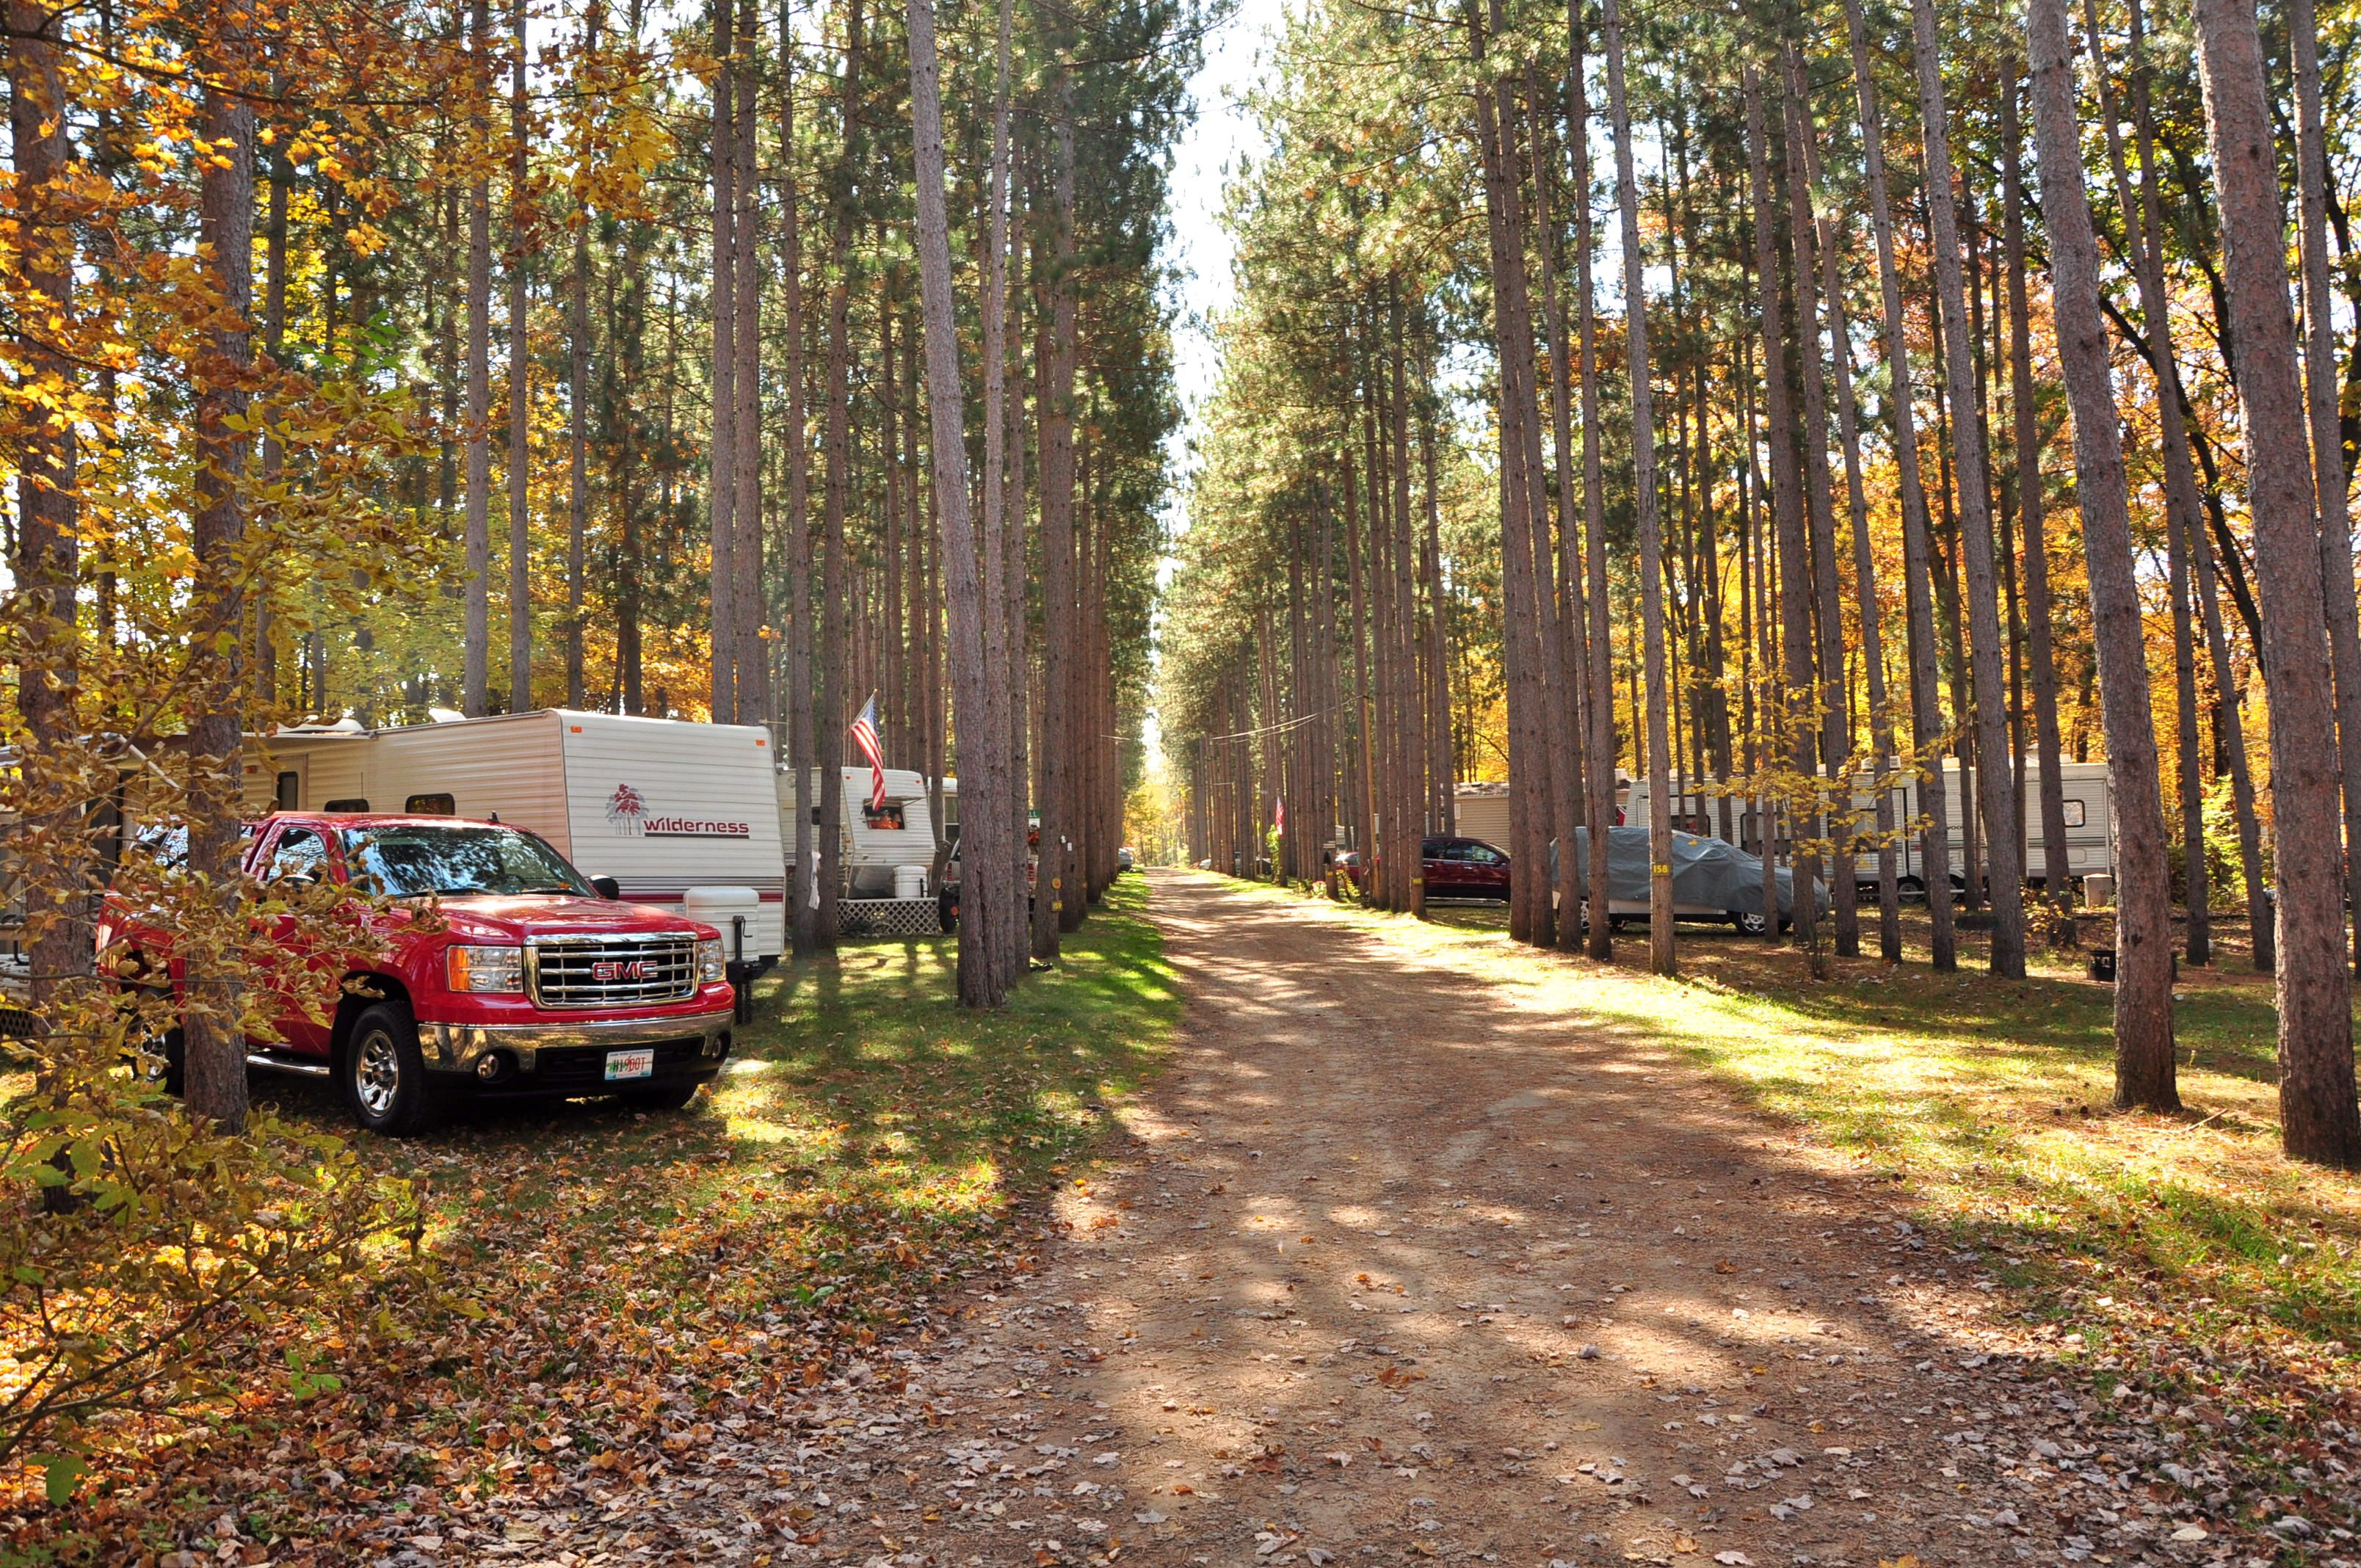 We Love When The Sun Peaks Out Between The Trees Yukon Trails Wi 100daysofcamping Camping Resort Resorts In Wisconsin Yukon Trail